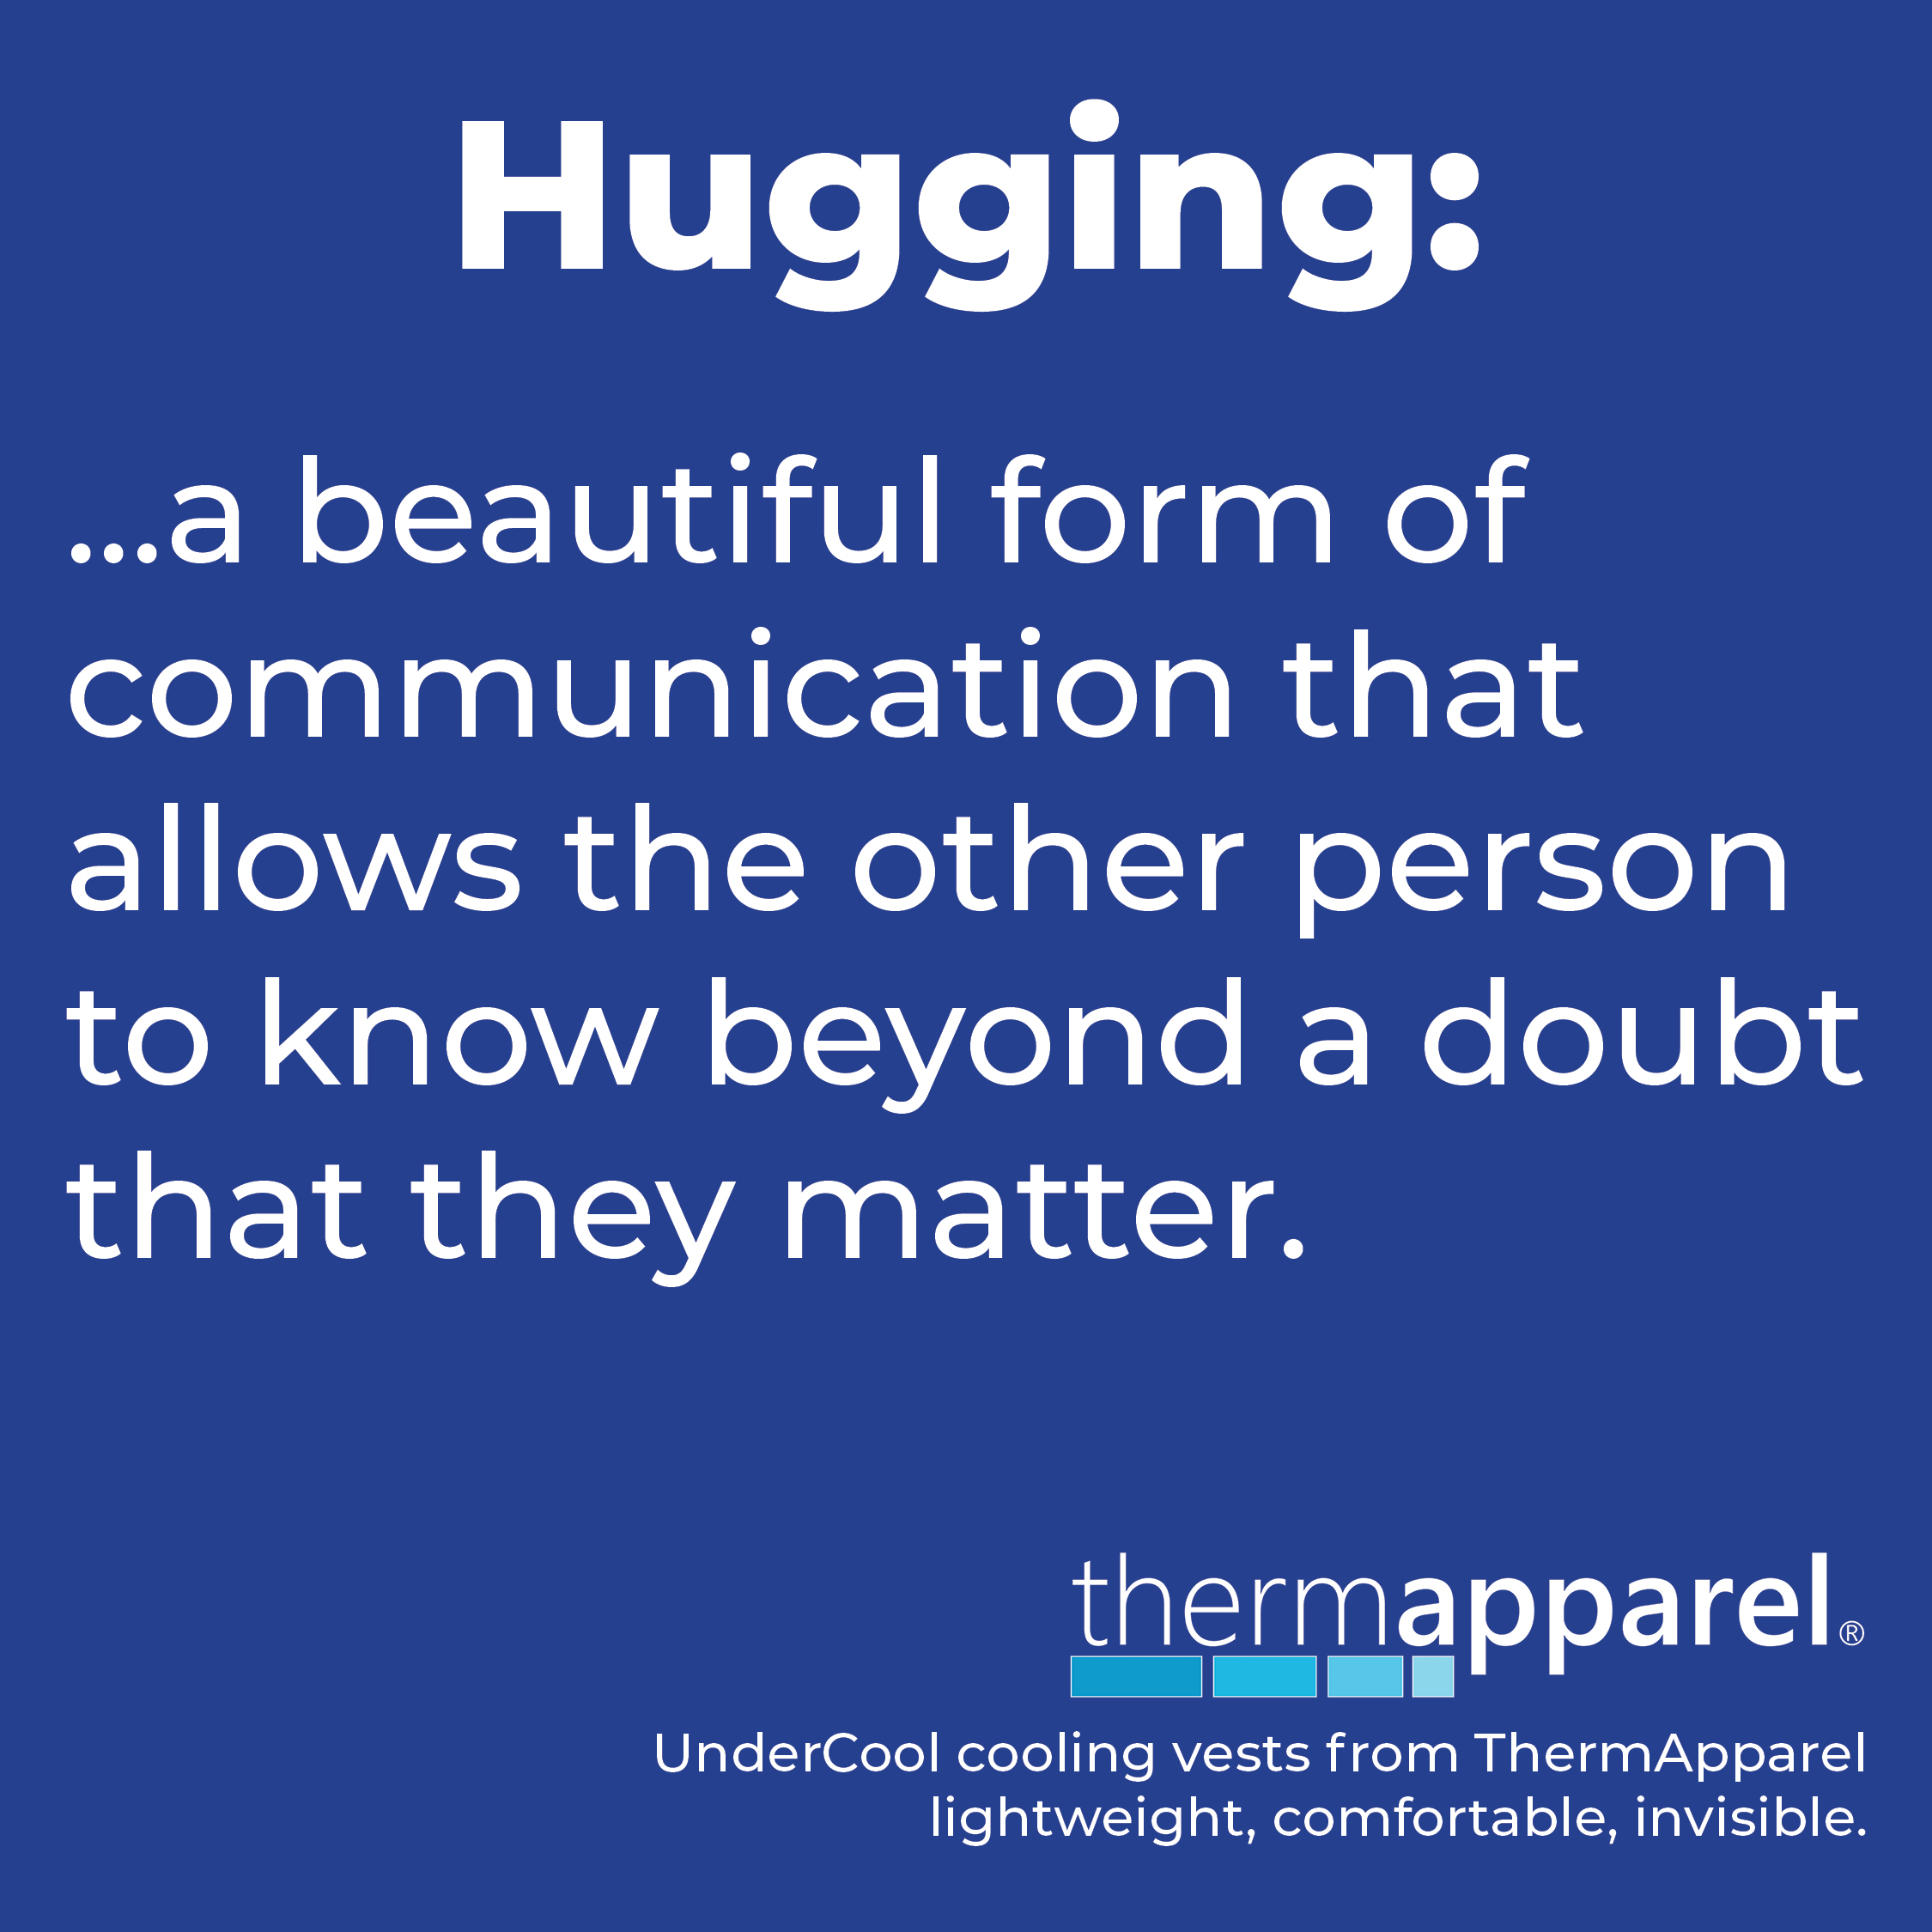 Hugging: a beautiful form of communication